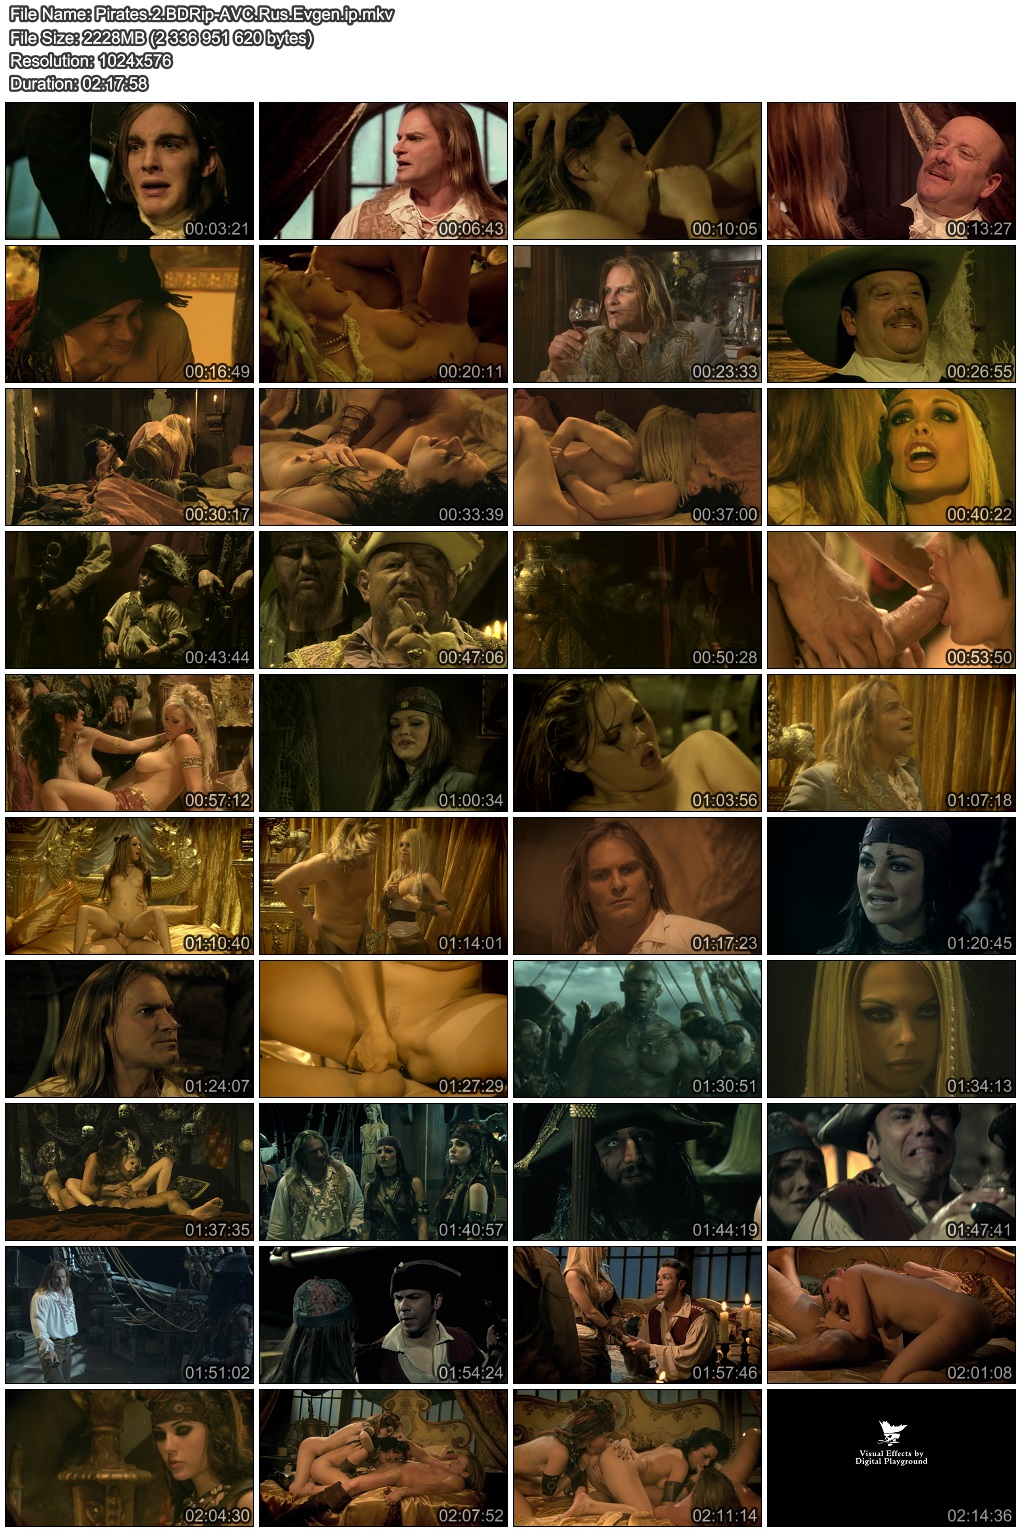 Pirates sex movie online free sexual clips